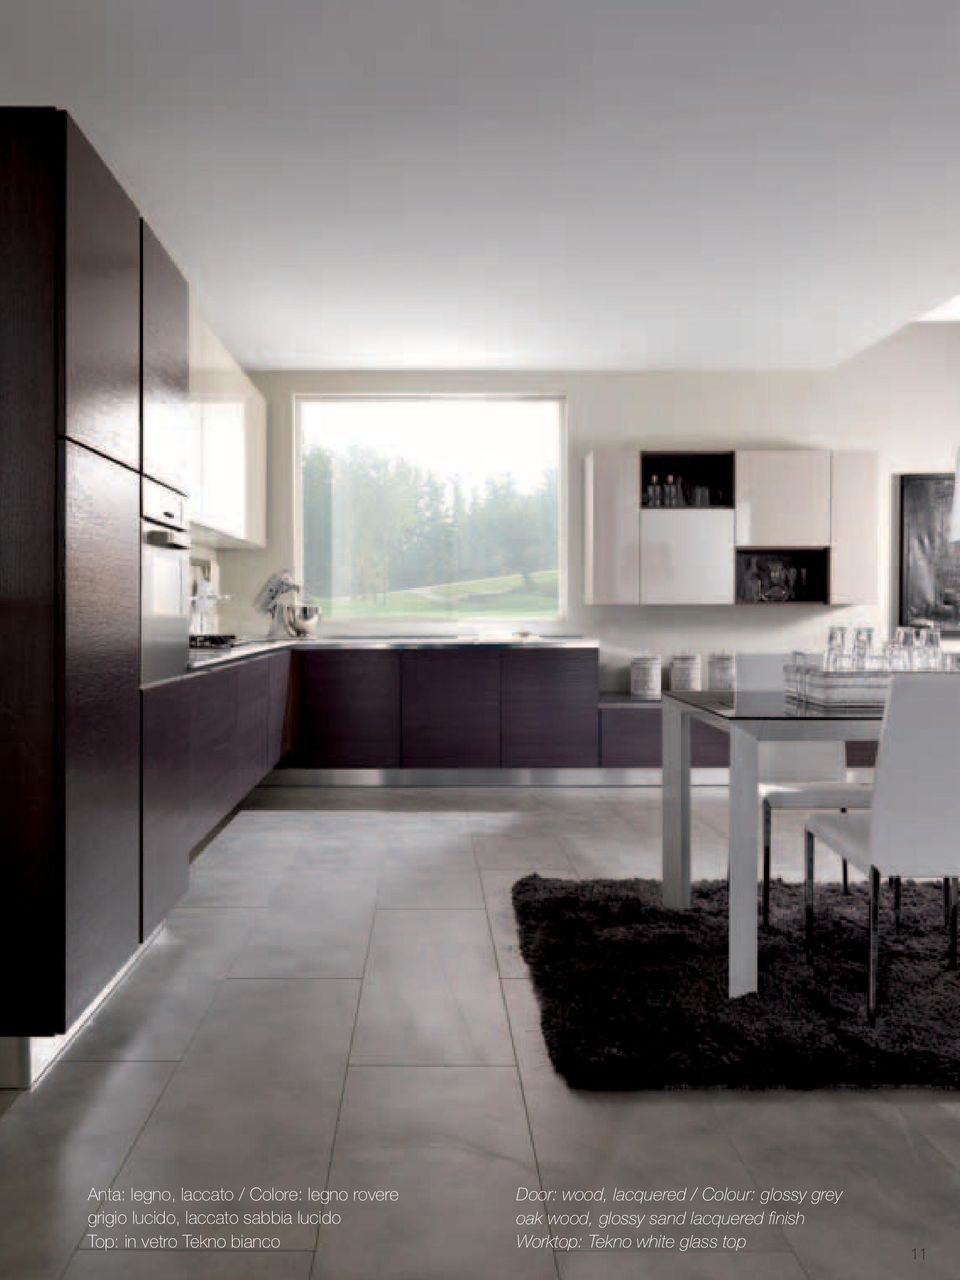 bianco Door: wood, lacquered / Colour: glossy grey oak